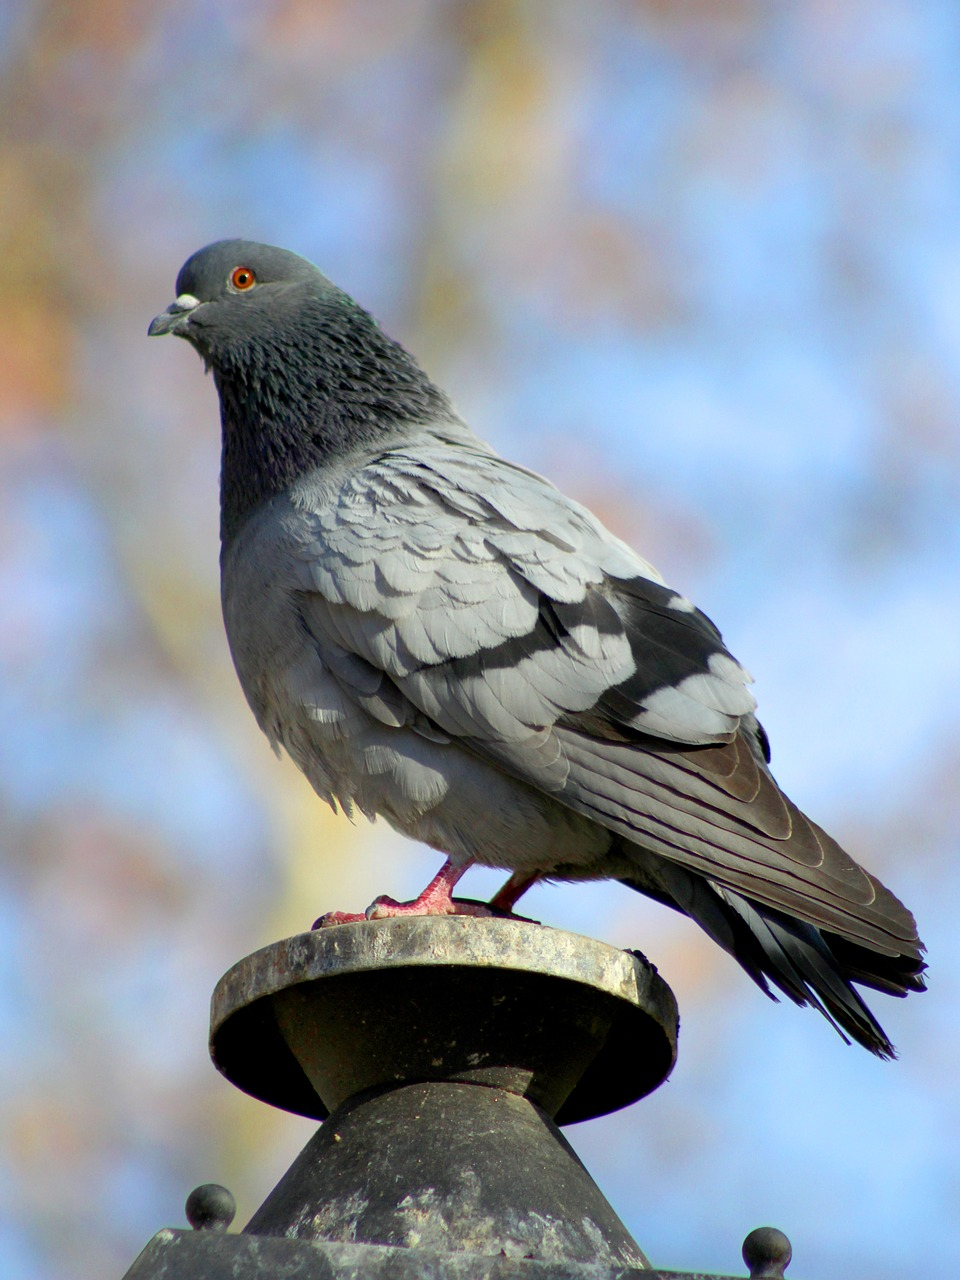 paloma,park,ave,plaza,street lamp,lamp,lighting,lanterns,urban square,post,diseases,urban,urban wildlife,fauna,feathers,dove common,vertical,bokeh,depth of field,blur,peak,columba livia,domestic pigeon,zoo,free pictures, free photos, free images, royalty free, free illustrations